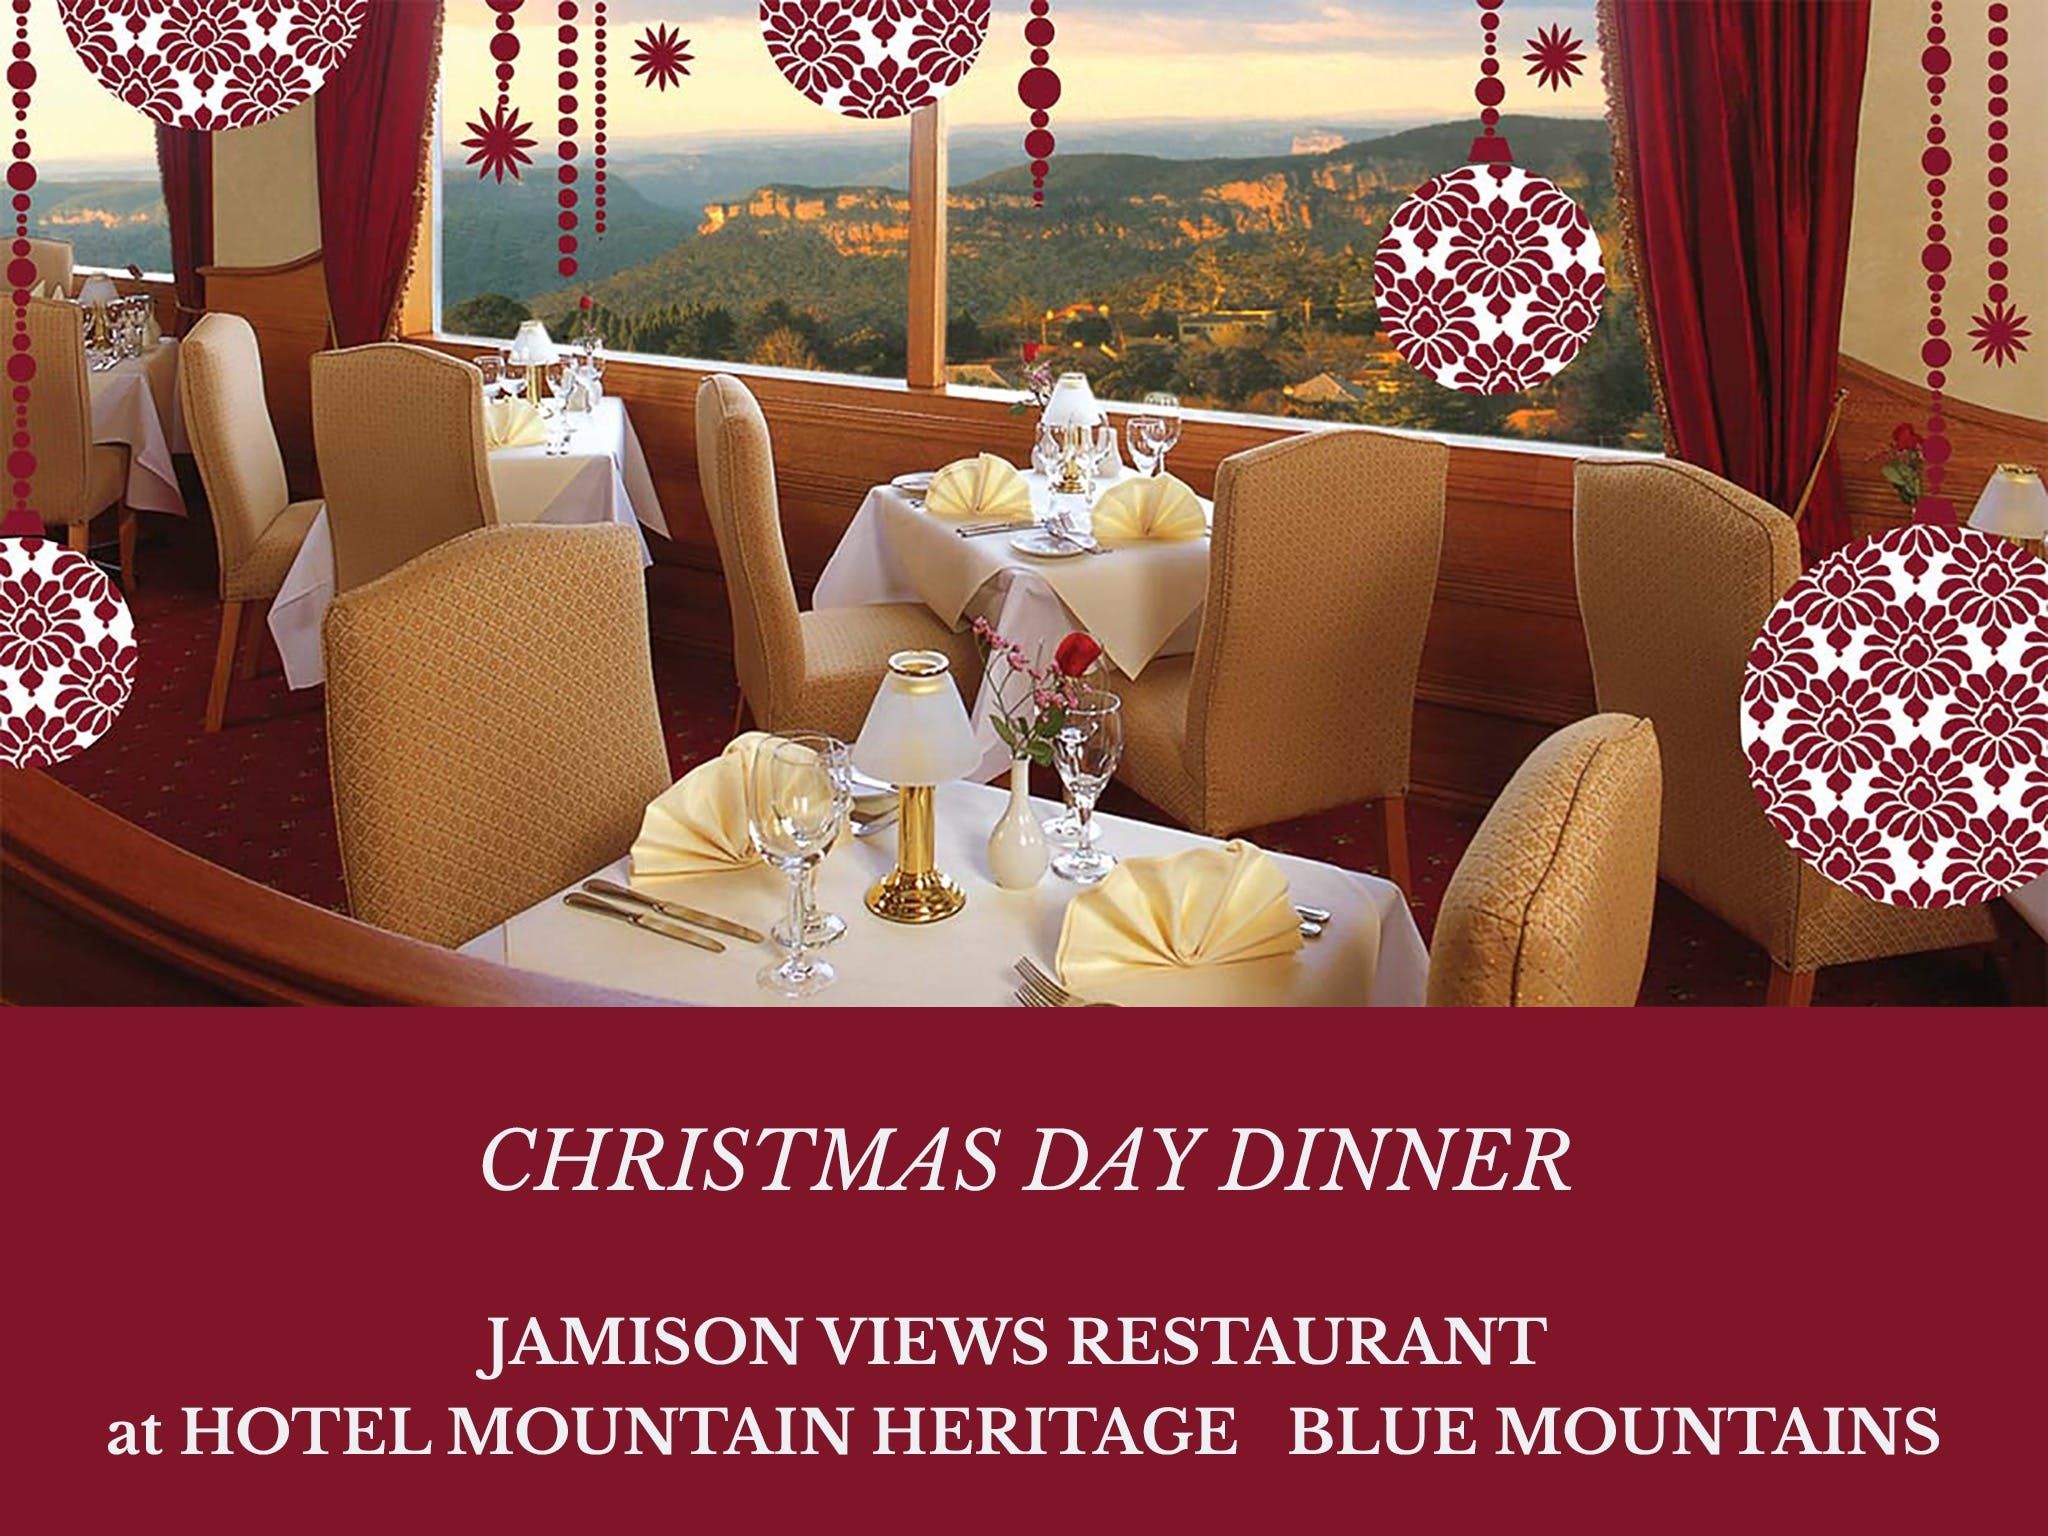 Christmas Day Dinner Hotel Mountain Heritage - Accommodation Resorts